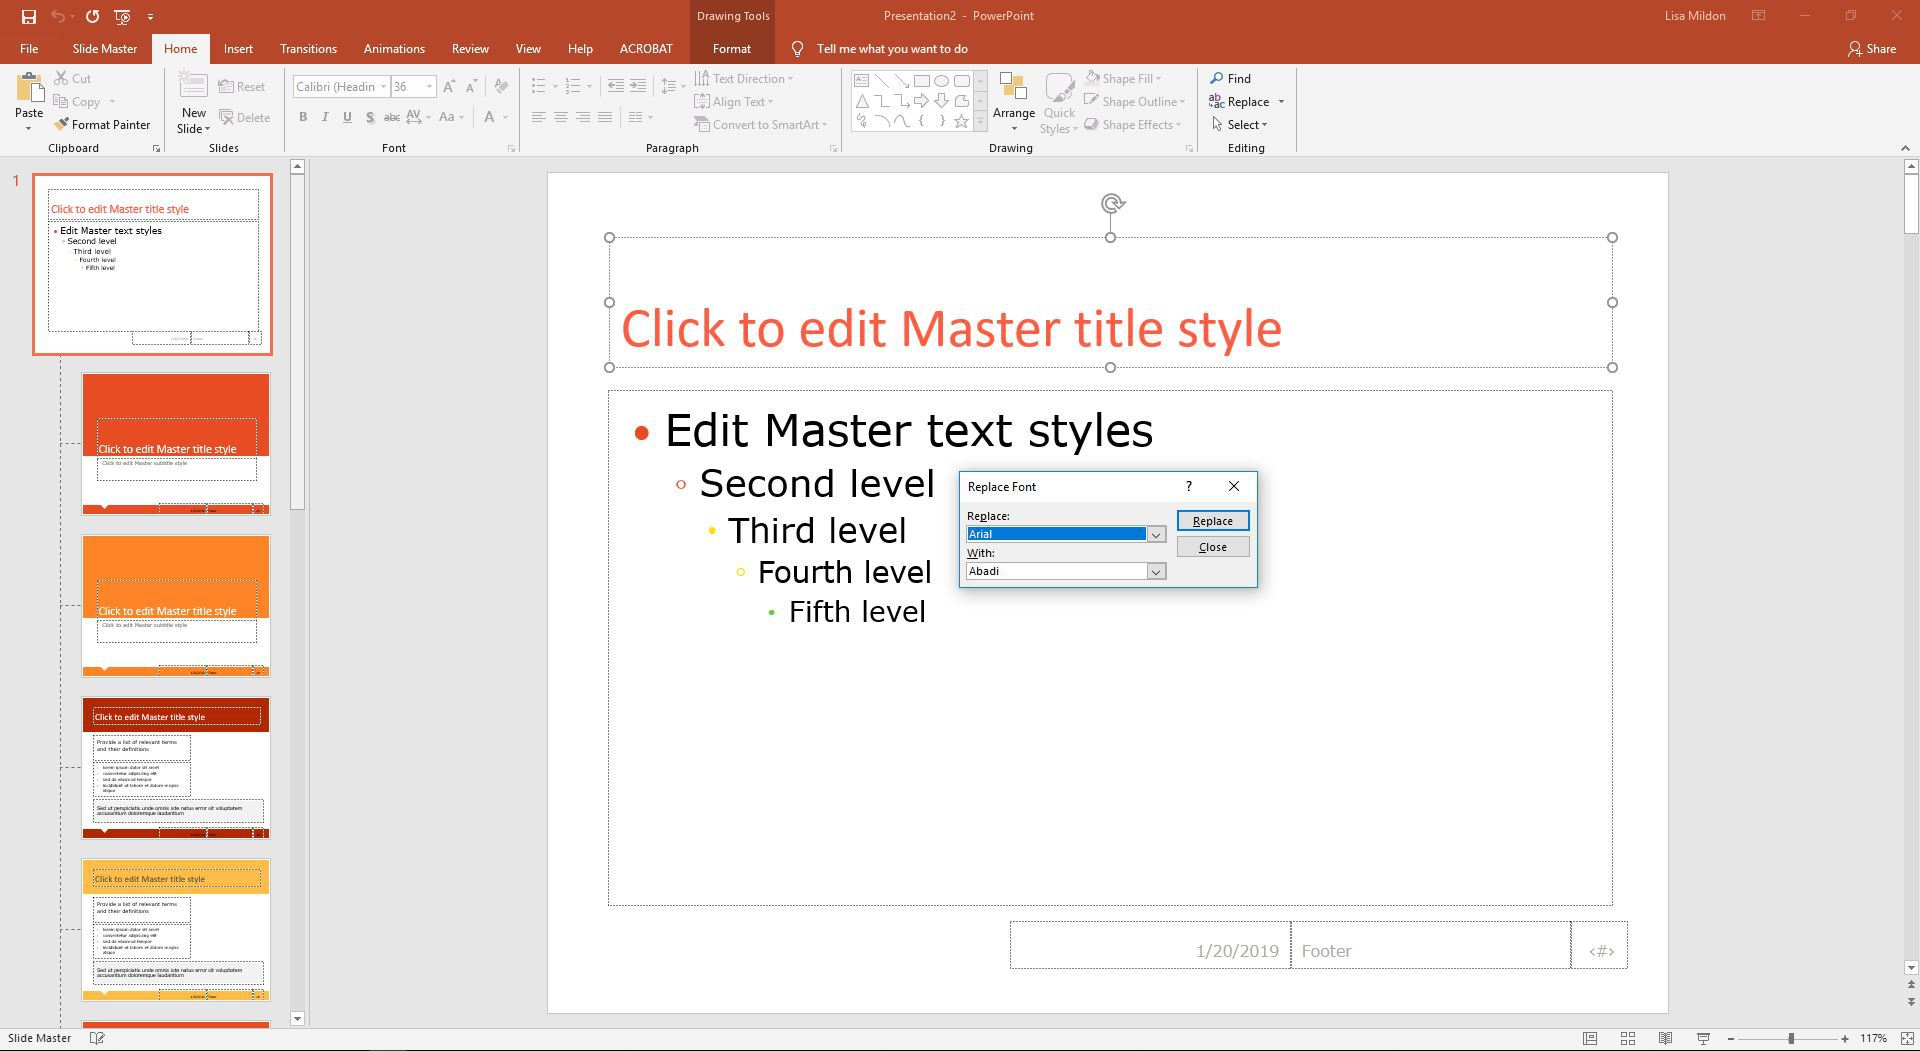 PowerPoint Replace Font dialog box